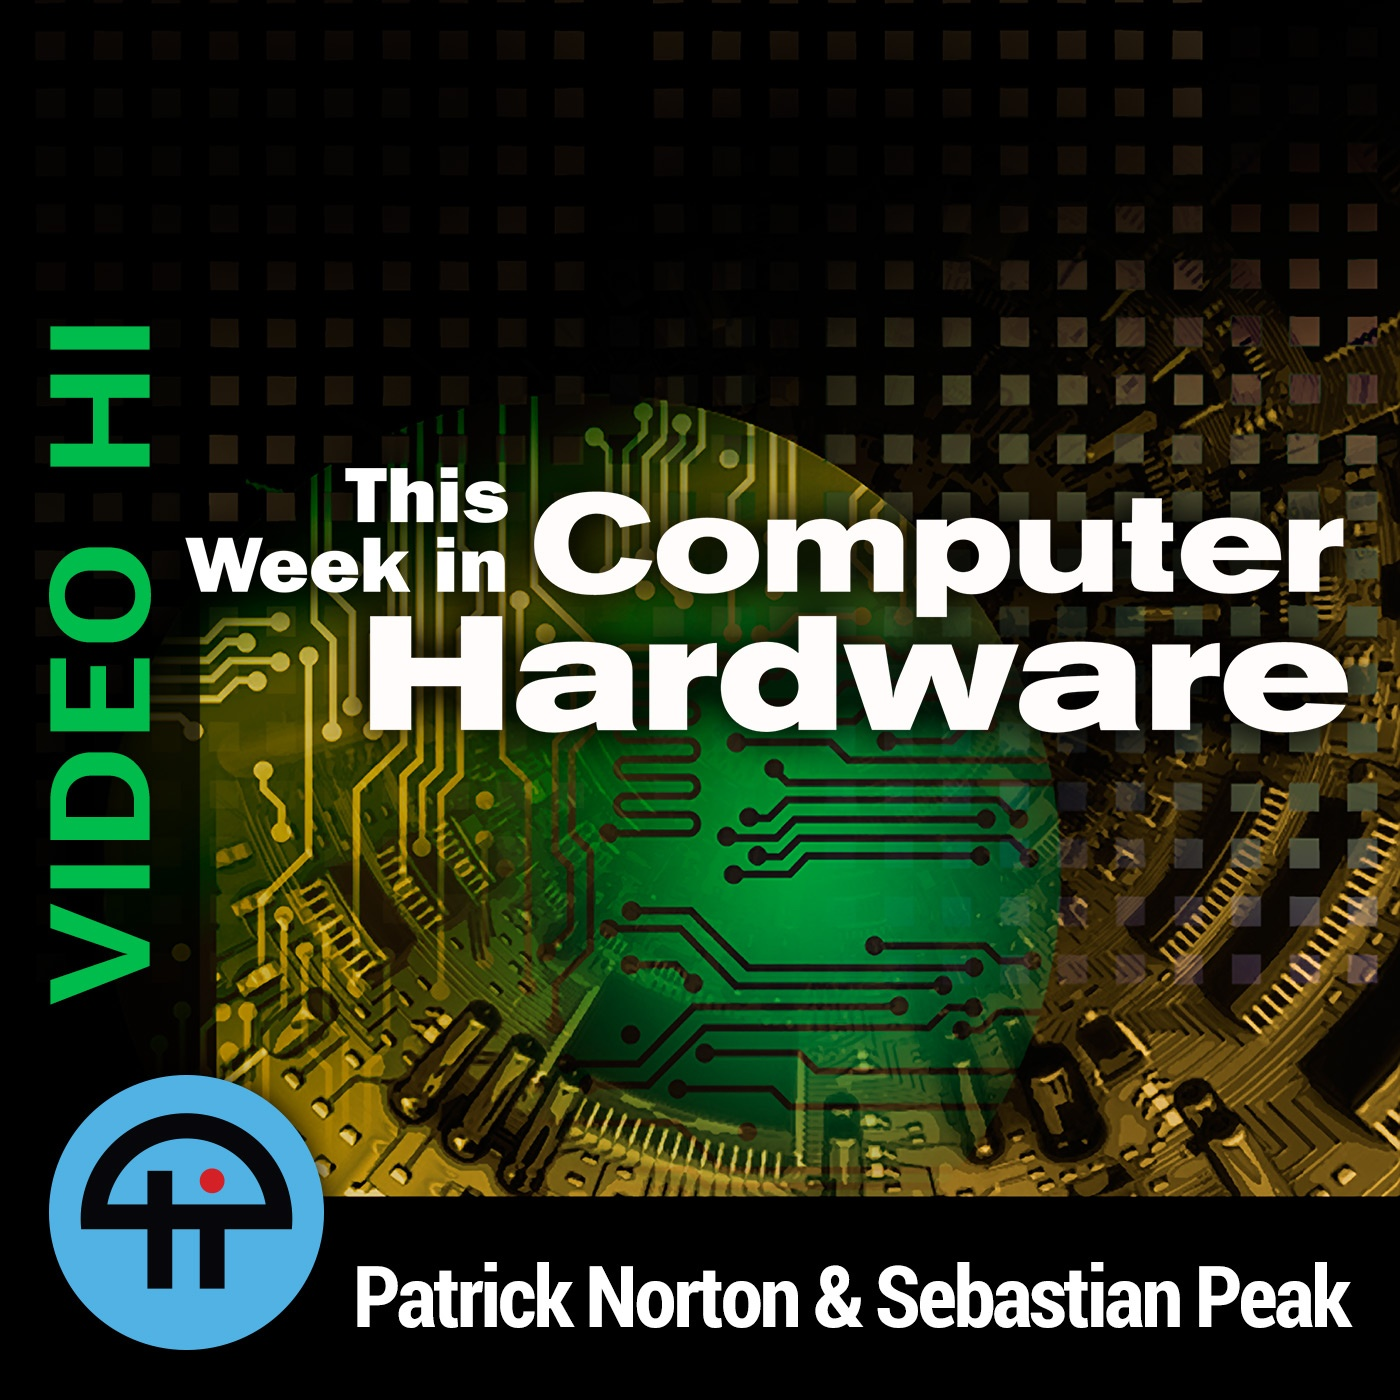 This Week in Computer Hardware (Video-HI)